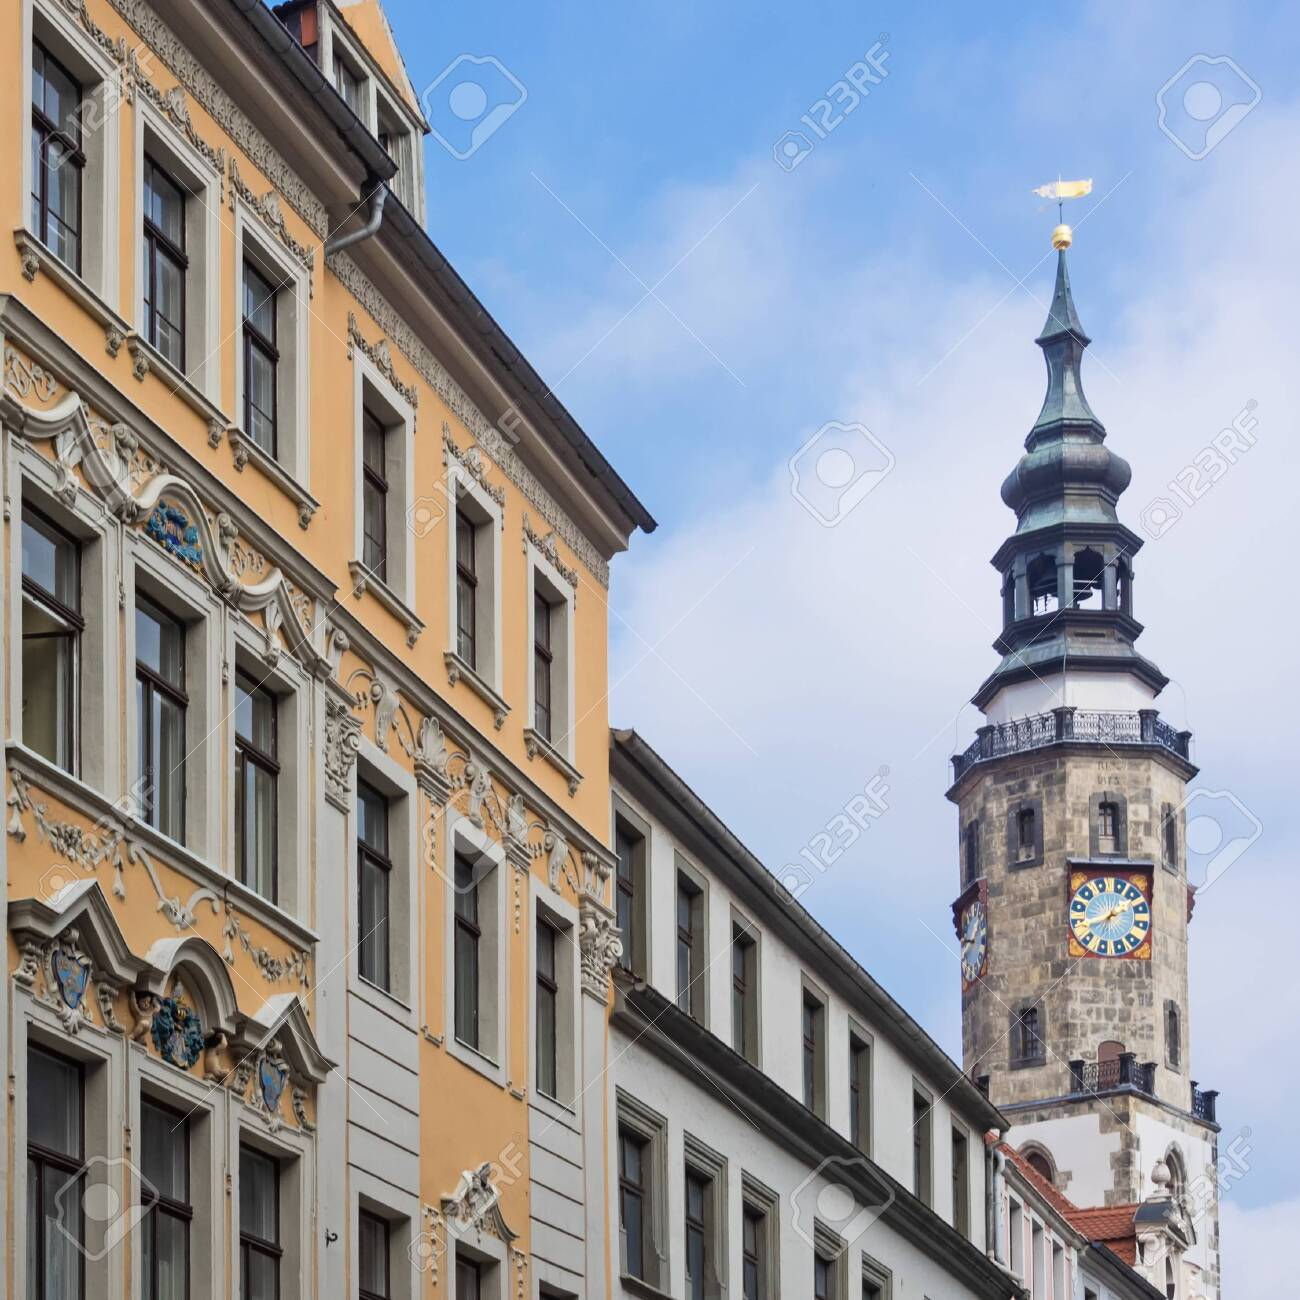 Historic buildings in the old town of city Goerlitz with town hall in the background, Saxony, Germany - 146409522